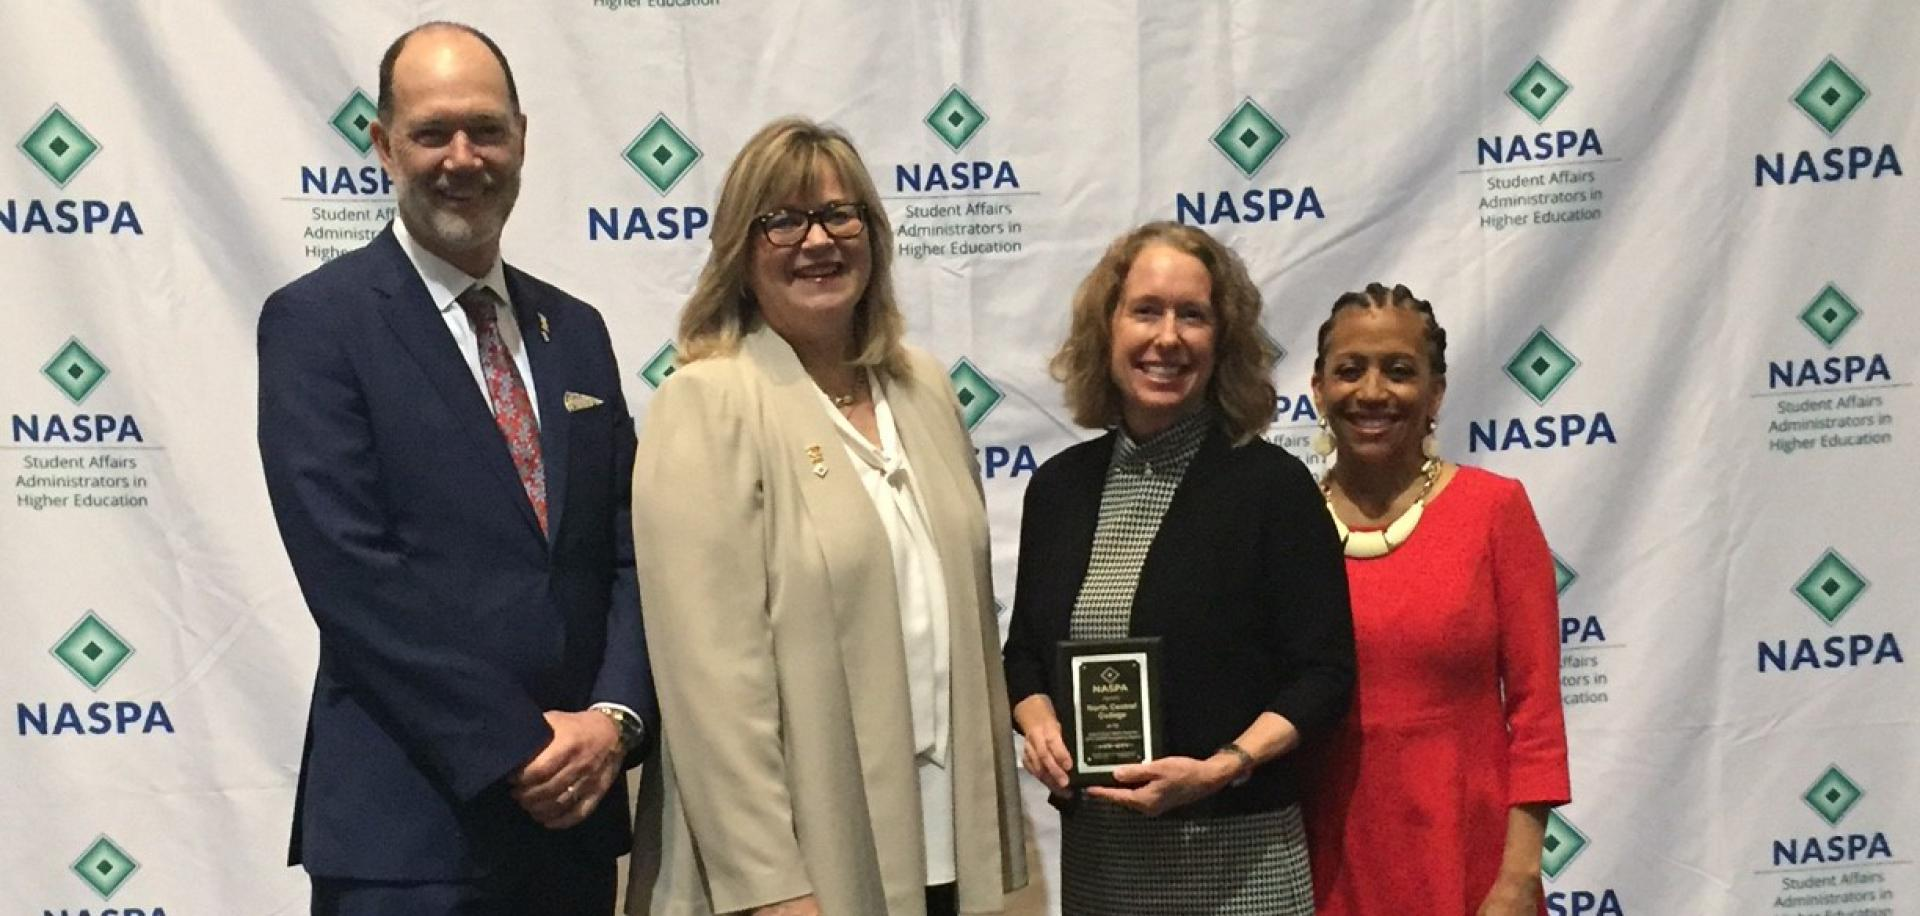 Pictured from left to right: NASPA President Kevin Kruger, NASPA Board Chair Dr. Deb Moriarty, Cardinal First Director Julie Carballo and Past NASPA Board Chair Dr. Lori White.